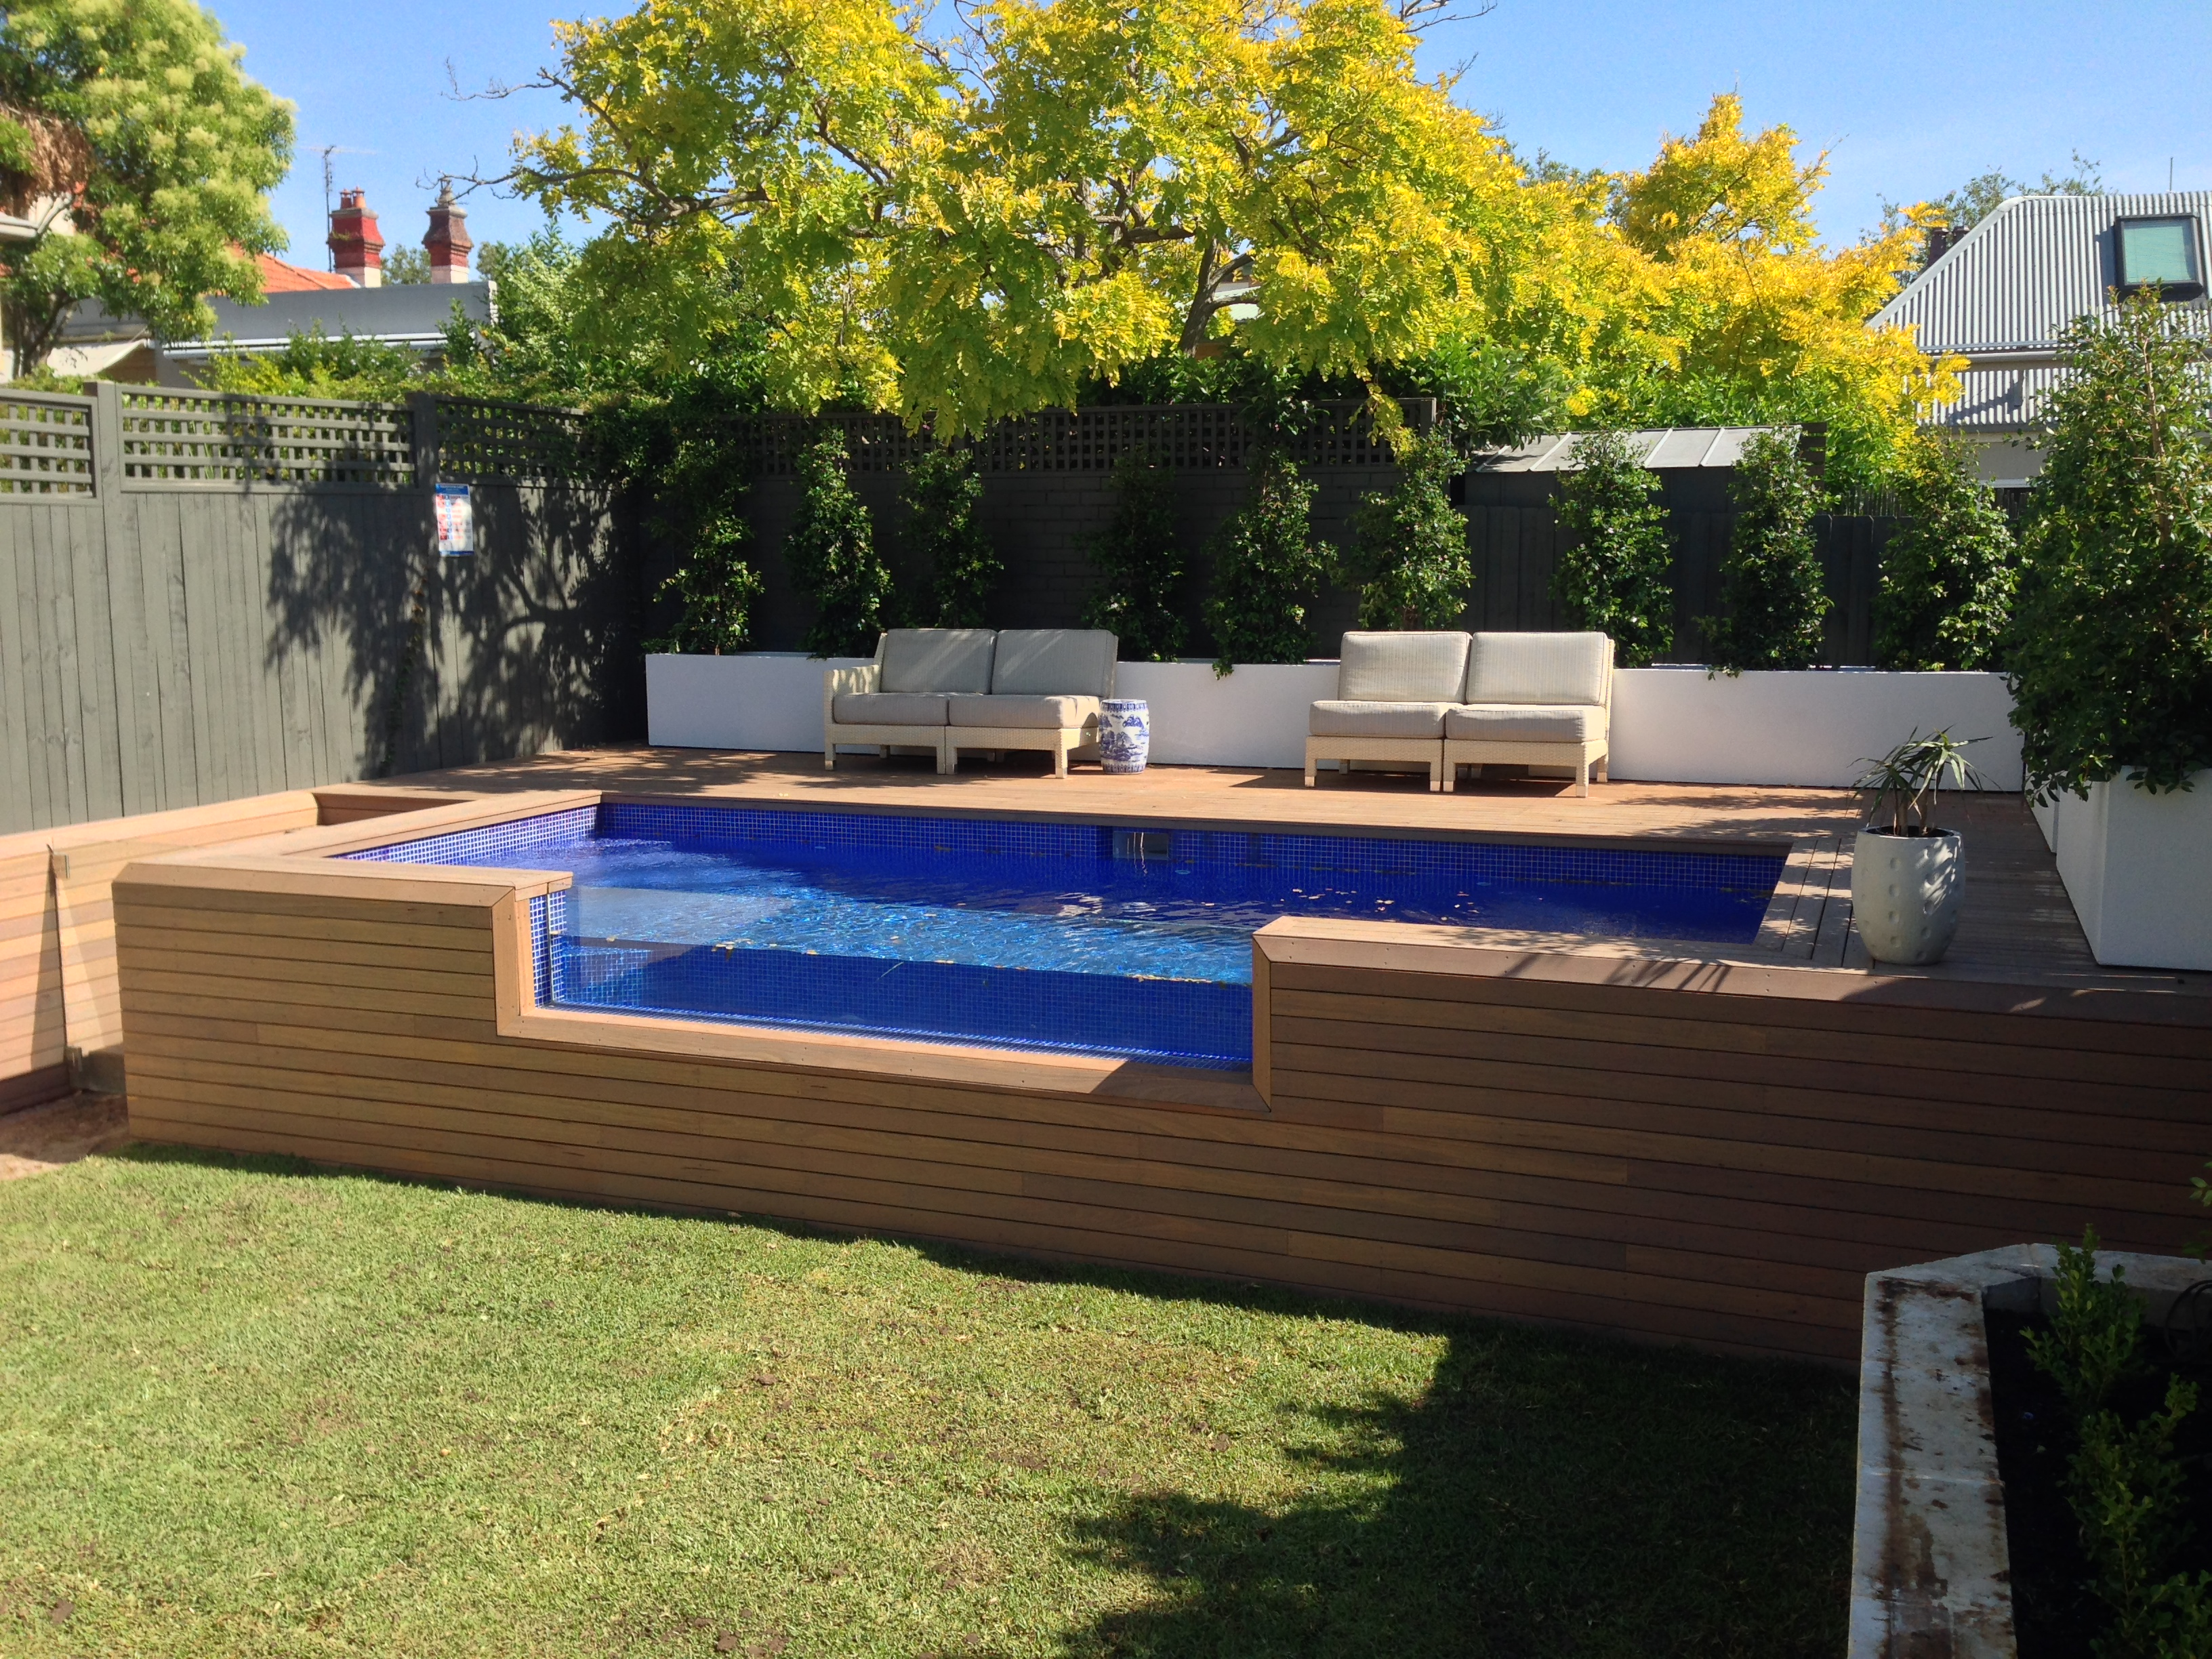 domain pools sydney pool builder sydney north sydney pool builder. Black Bedroom Furniture Sets. Home Design Ideas